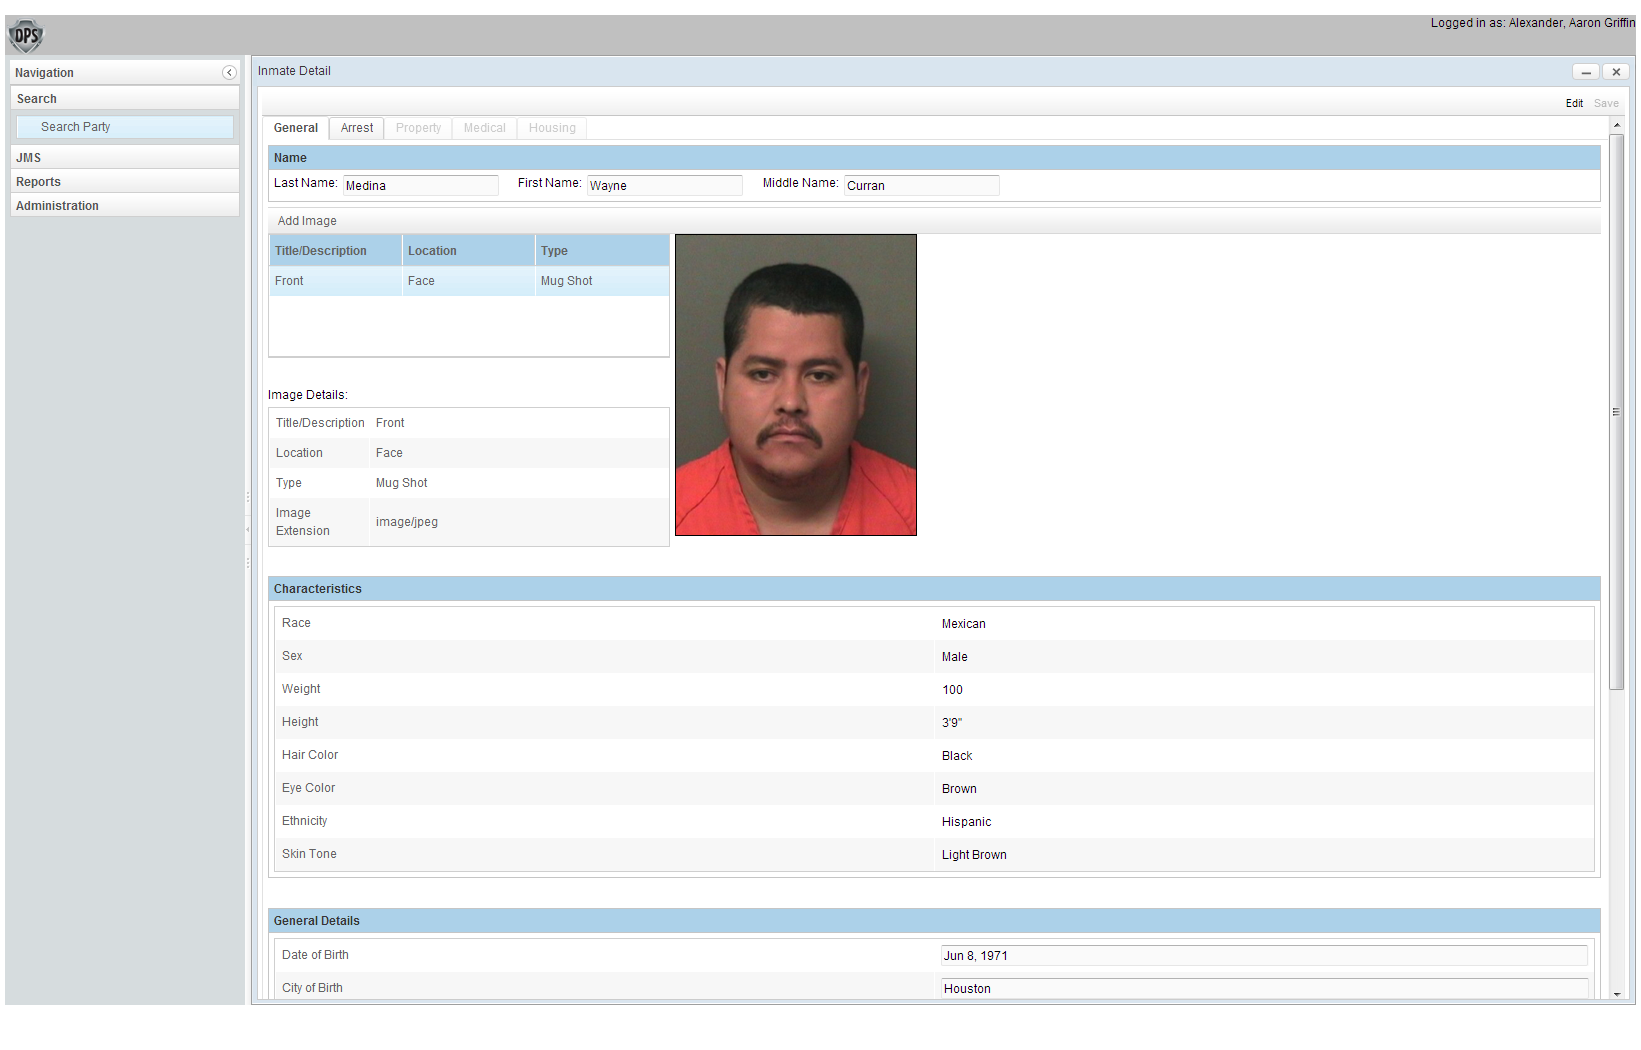 Dynamic Public Safety captures detailed records of all inmates